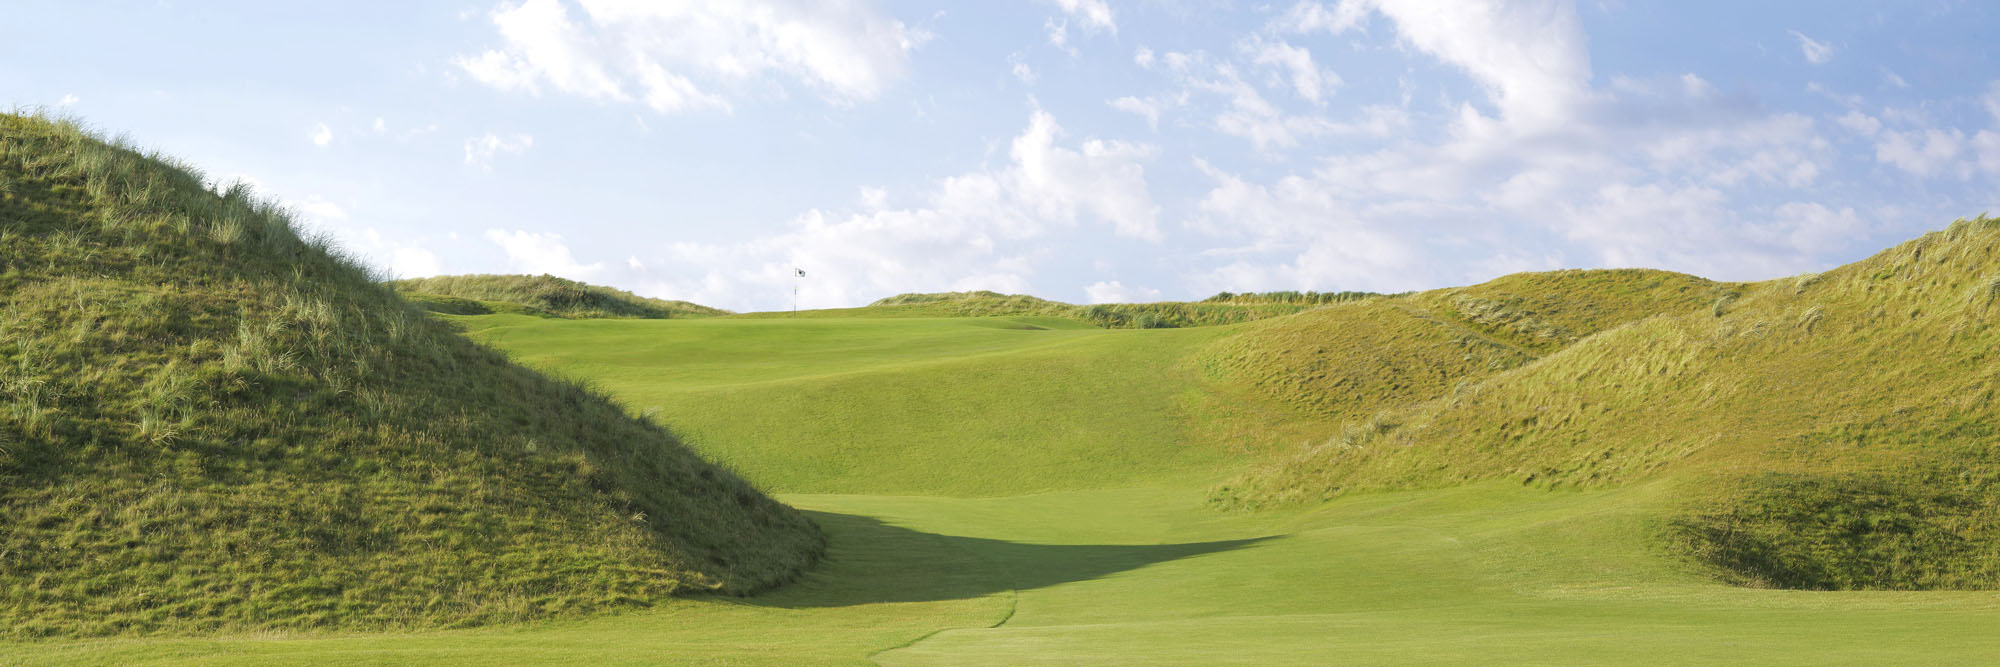 Golf Course Image - Ballybunion No. 2